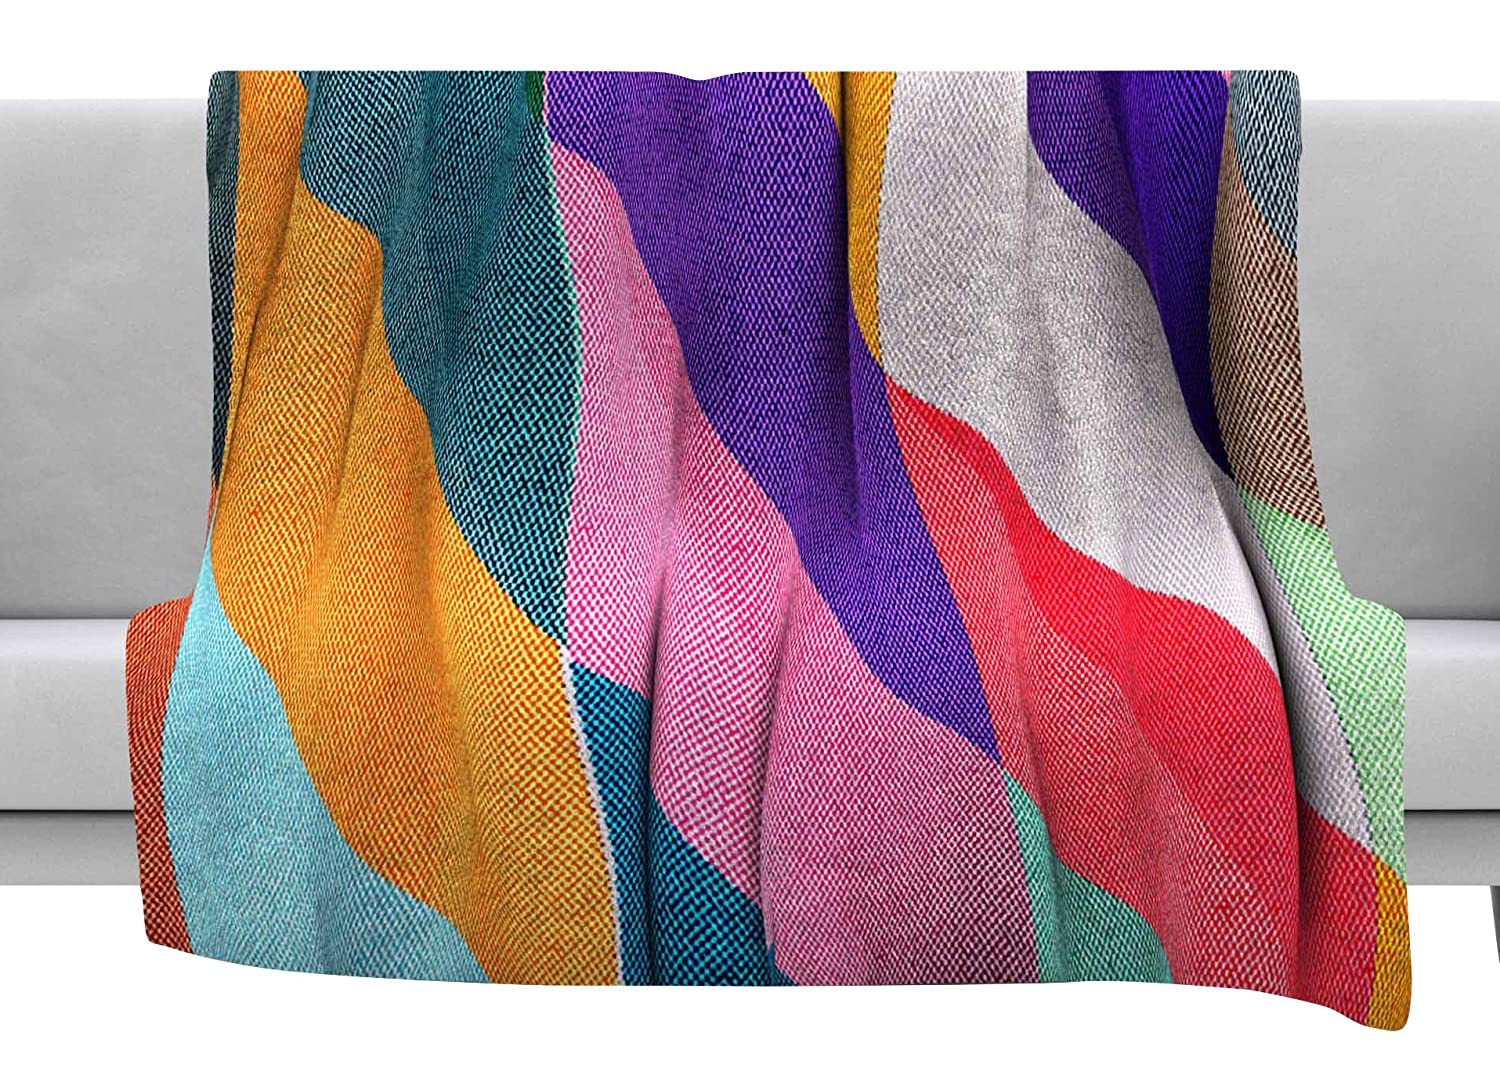 Kess InHouse Danny Ivan Timeless Texture Stripes Multicolor Throw 80 x 60 Fleece Blanket